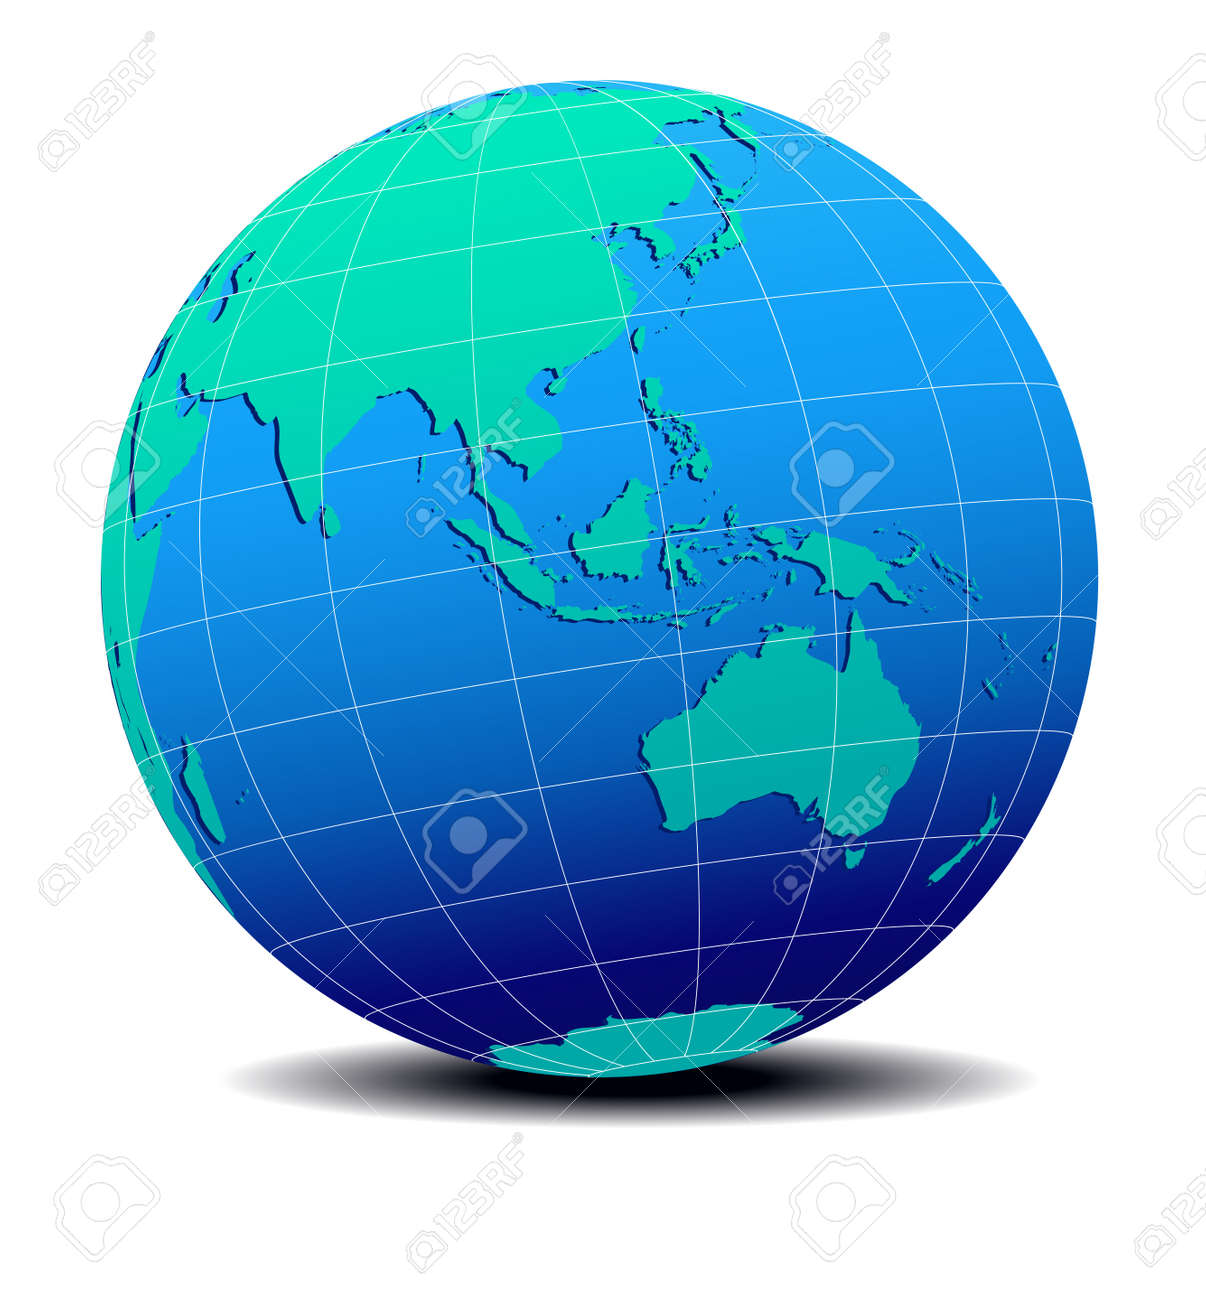 Australia In World Map.Asia And Australia Global World Map